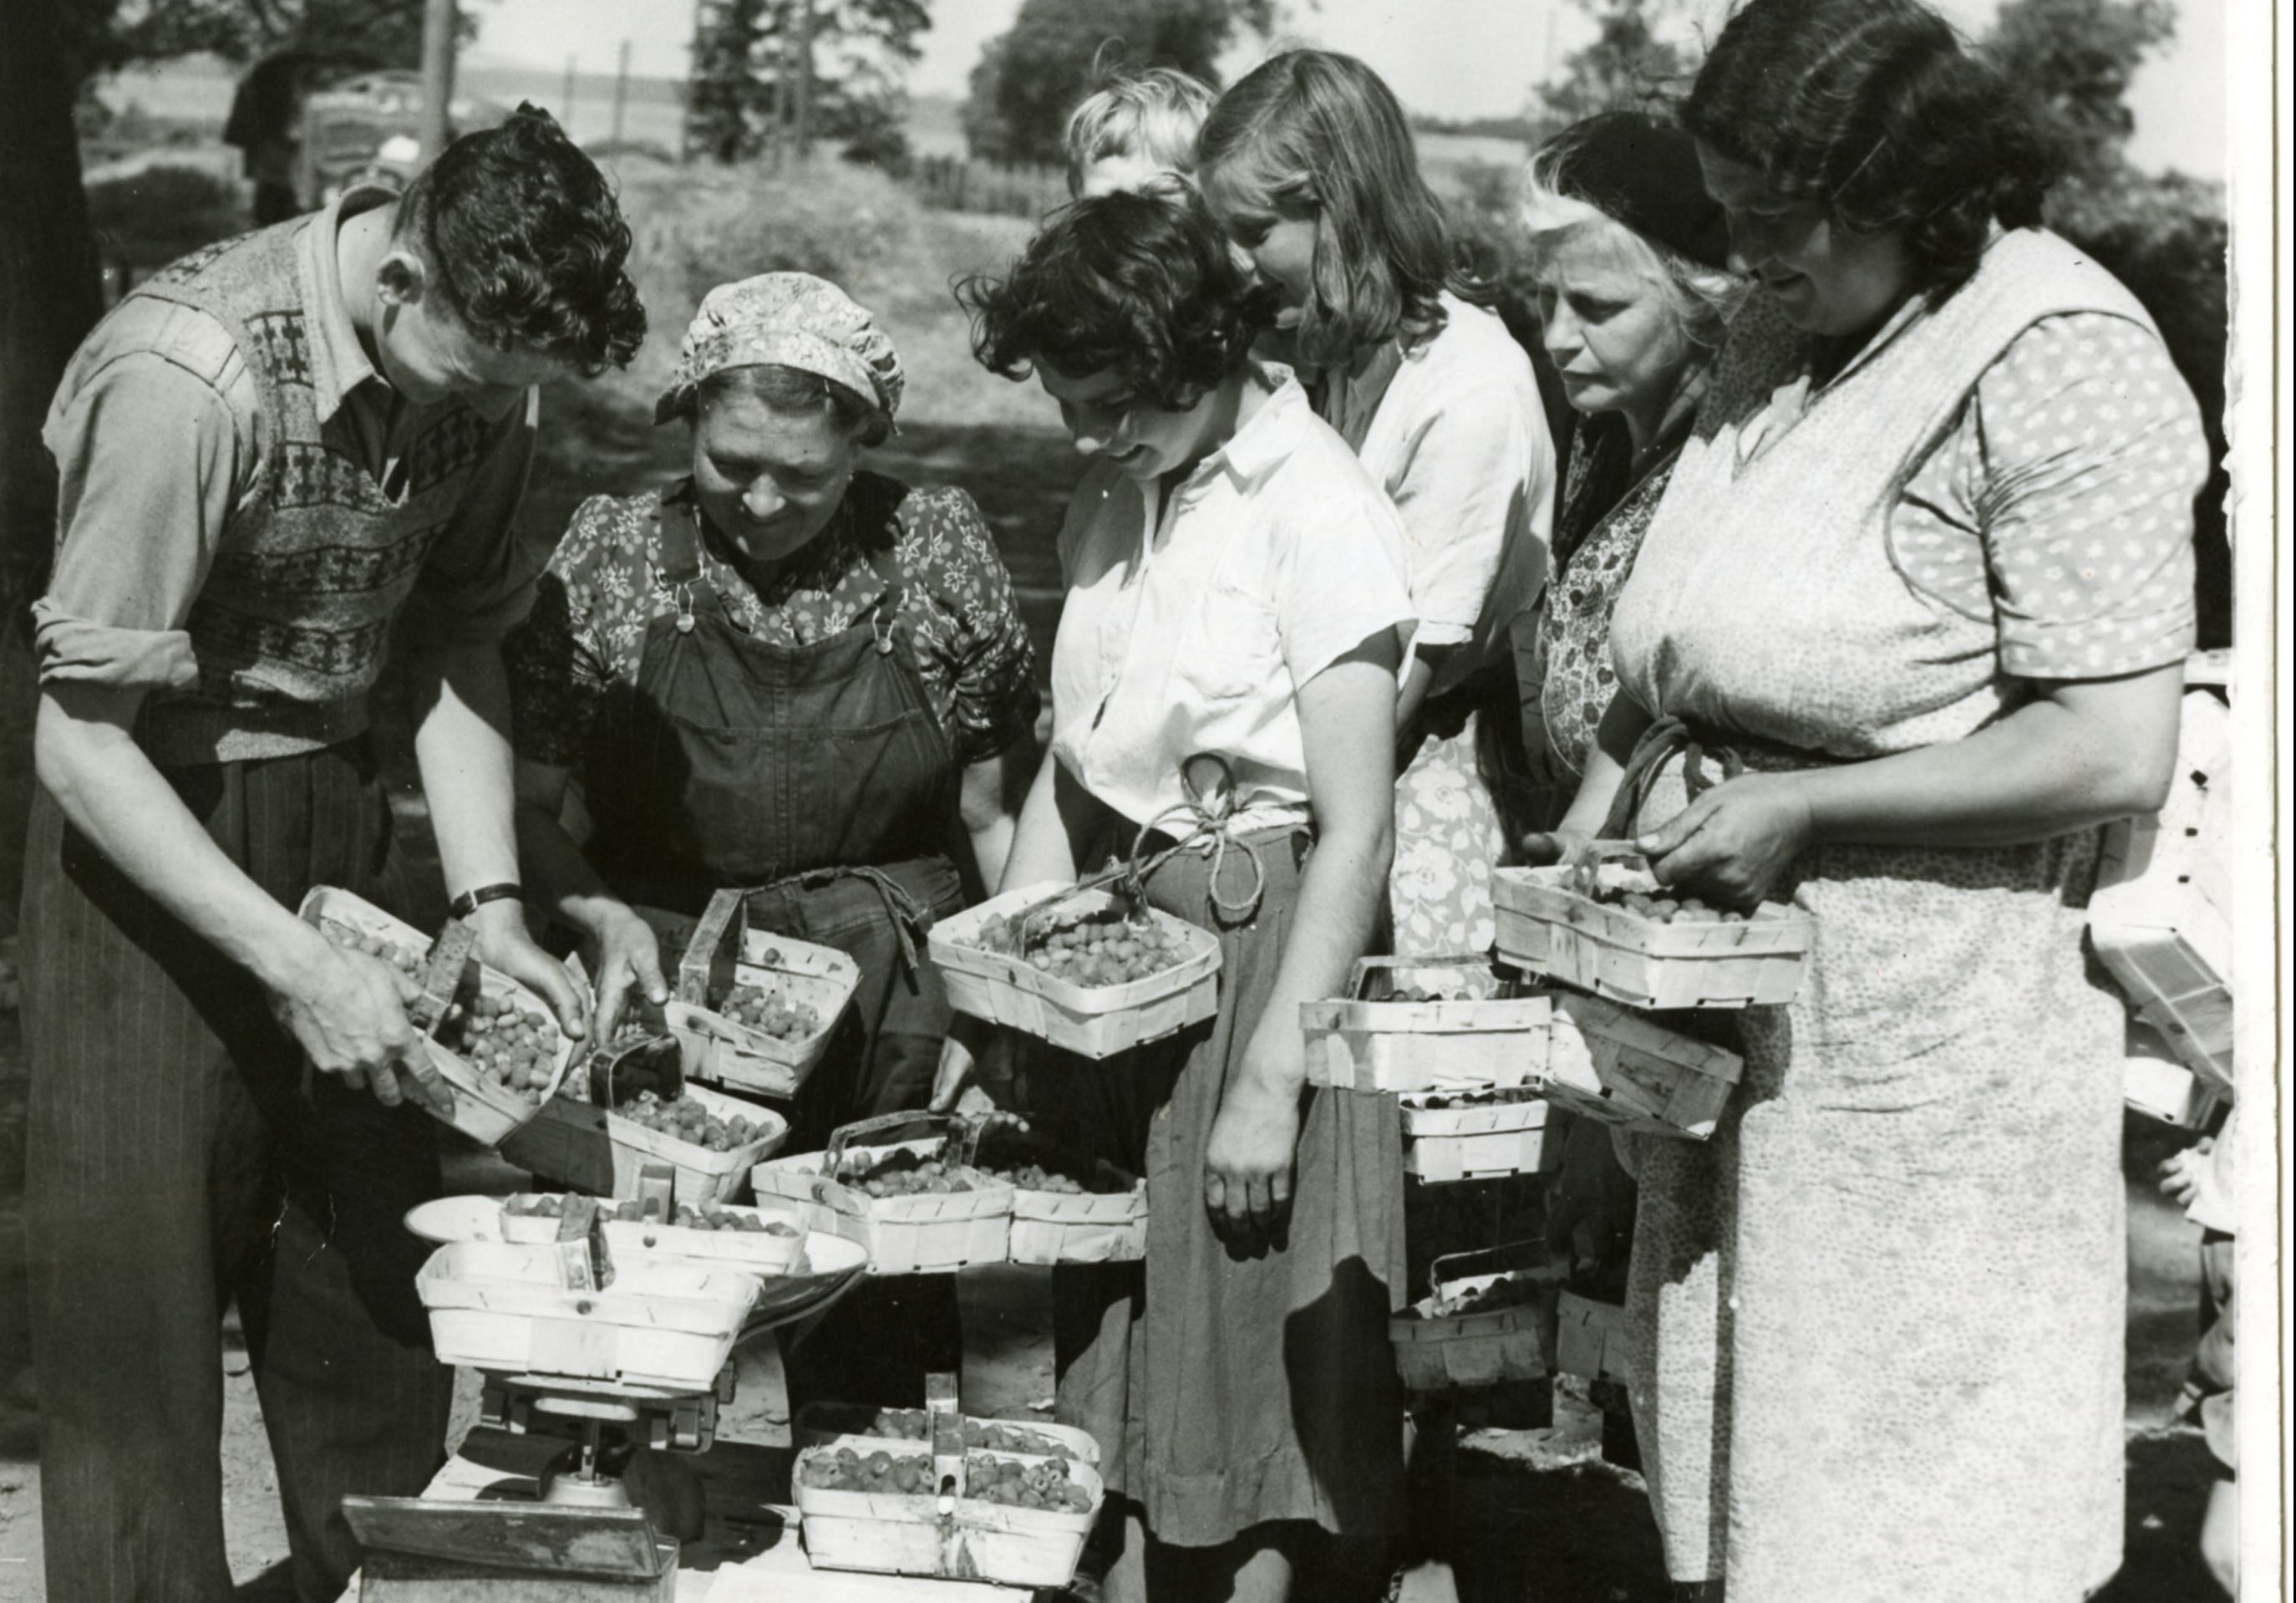 Berry pickers weigh in at Glendoick (DC Thomson)